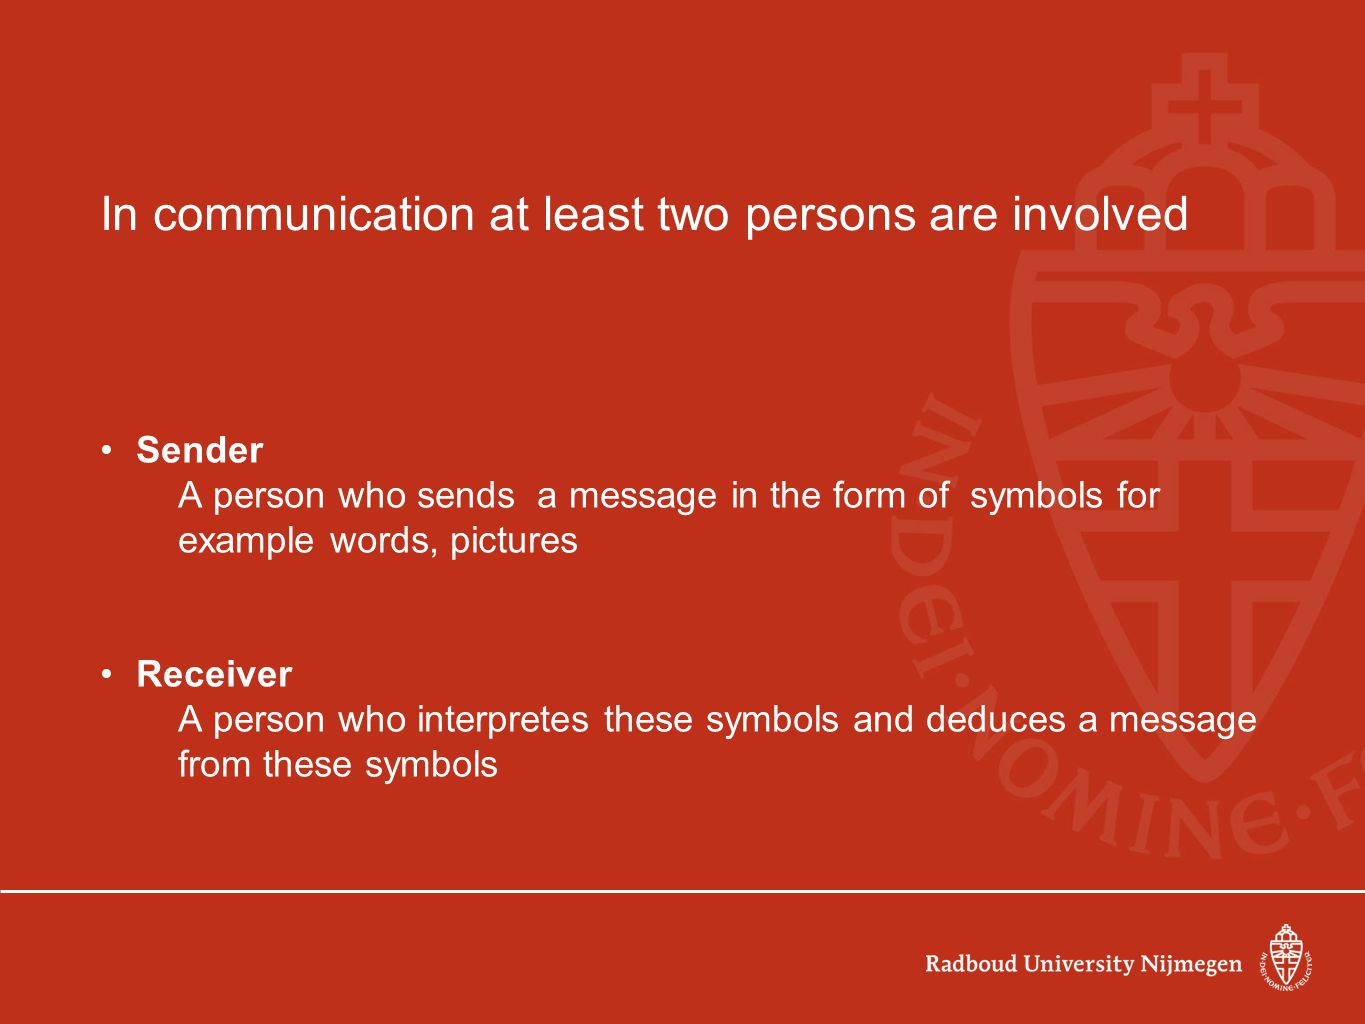 In communication at least two persons are involved